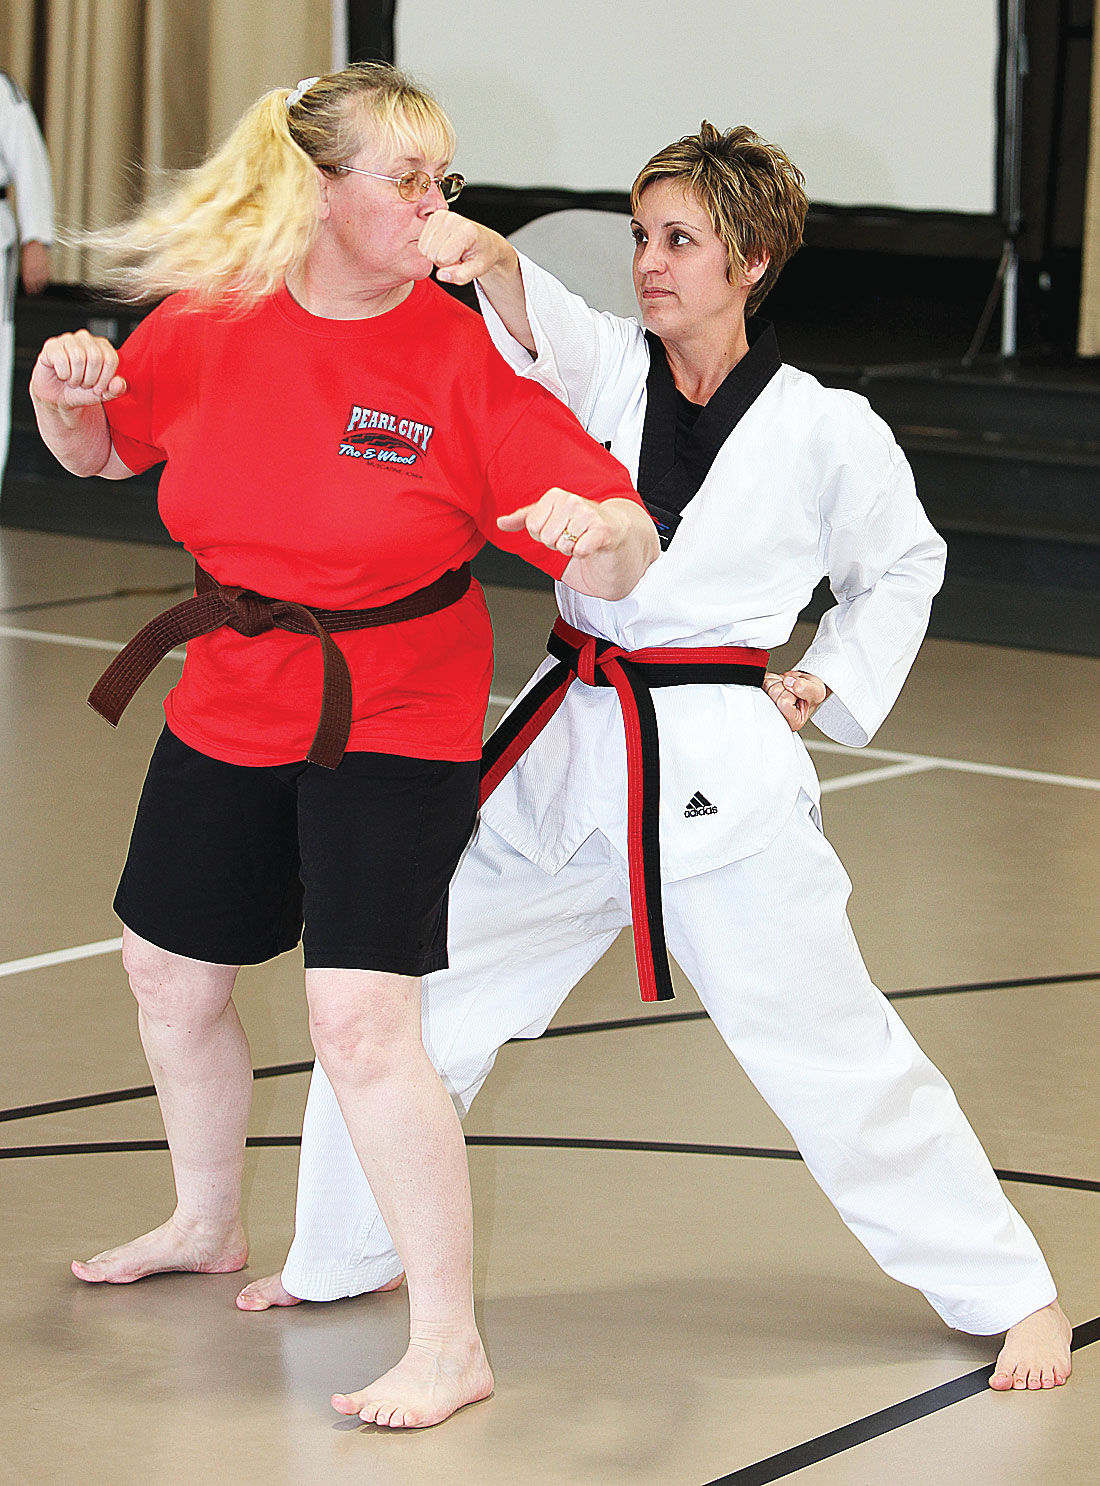 Get your kicks (and punches) at Riverbend Tae Kwon Do Studio